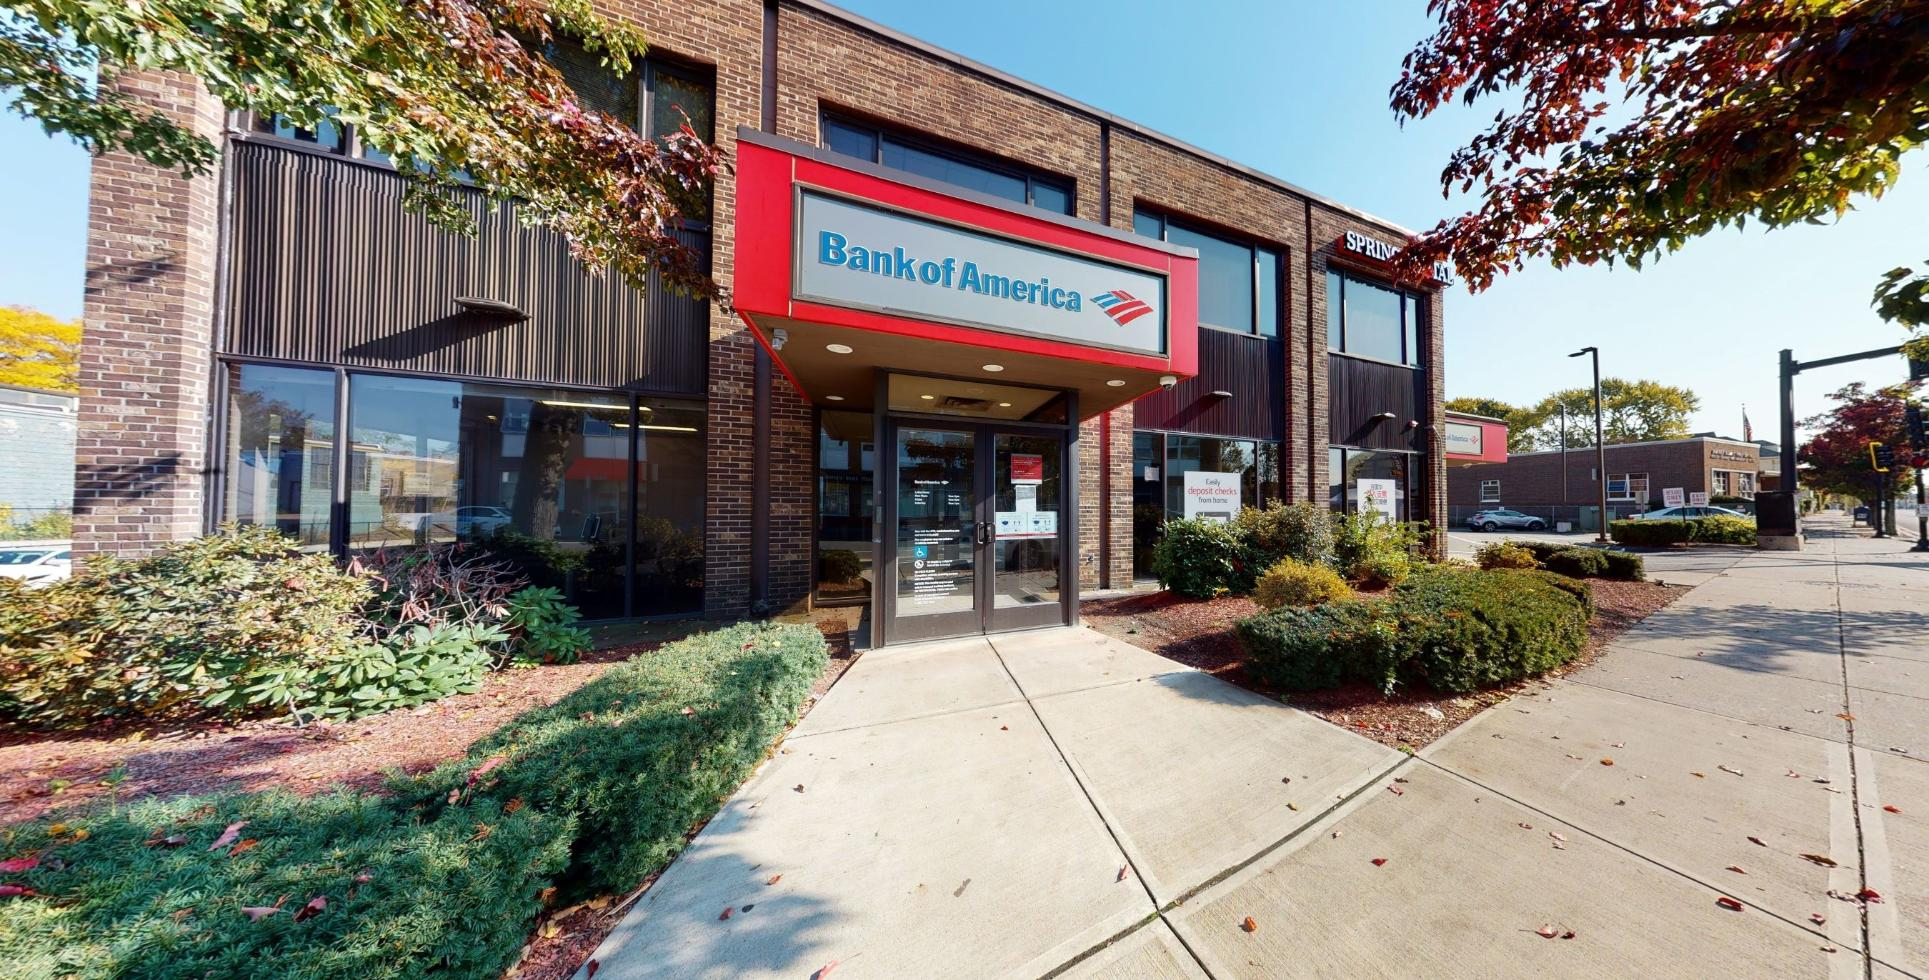 Bank of America financial center with walk-up ATM | 440 Hancock St, North Quincy, MA 02171